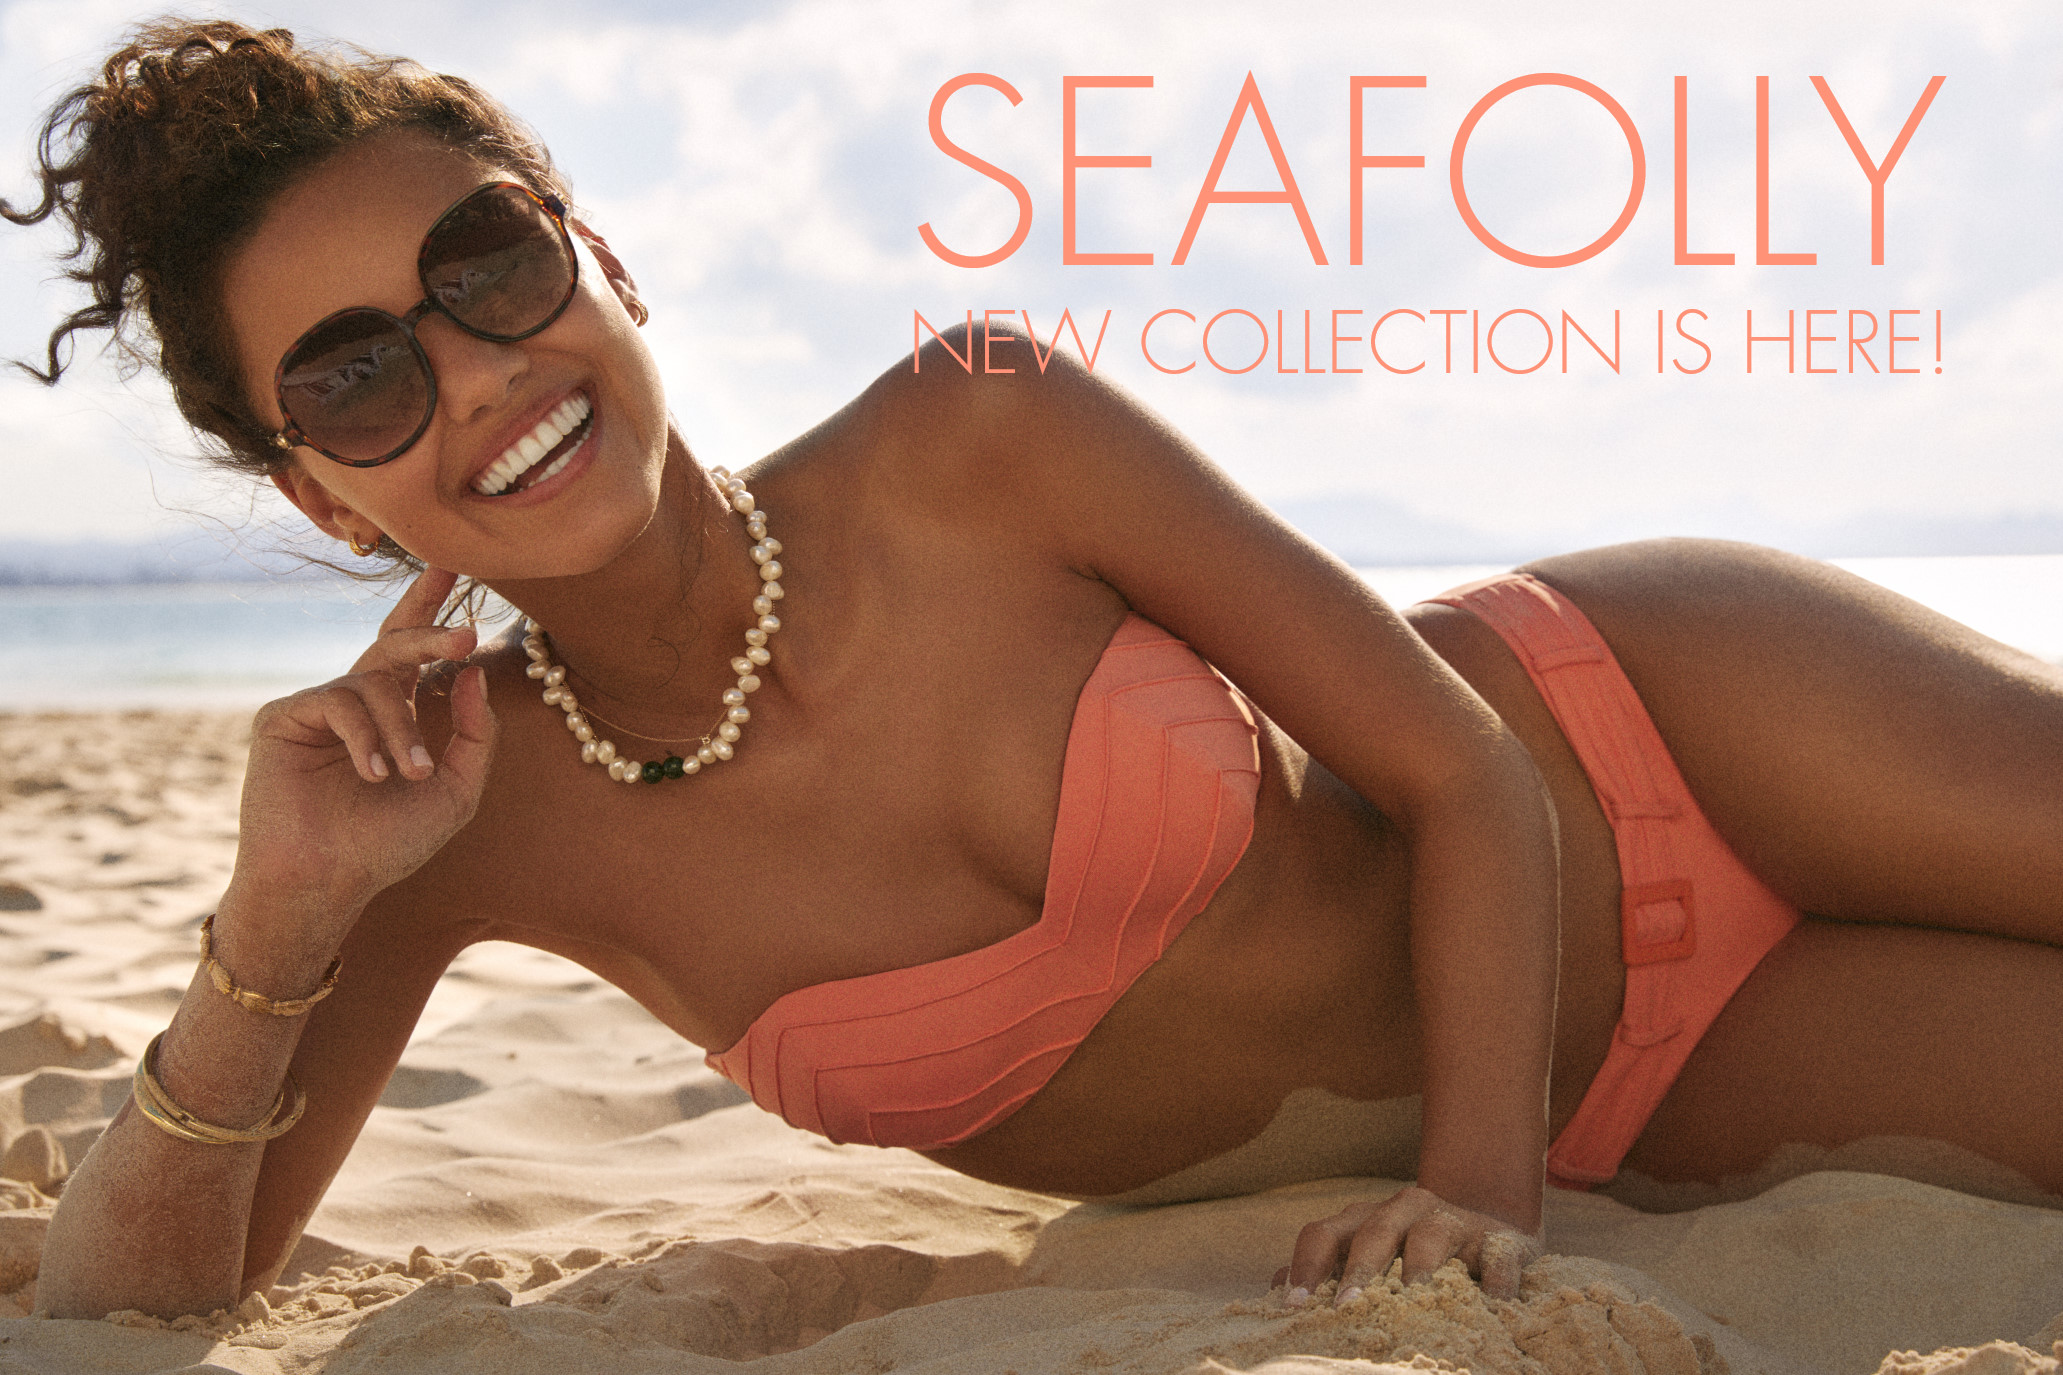 Seafolly swimwear Summer 2020